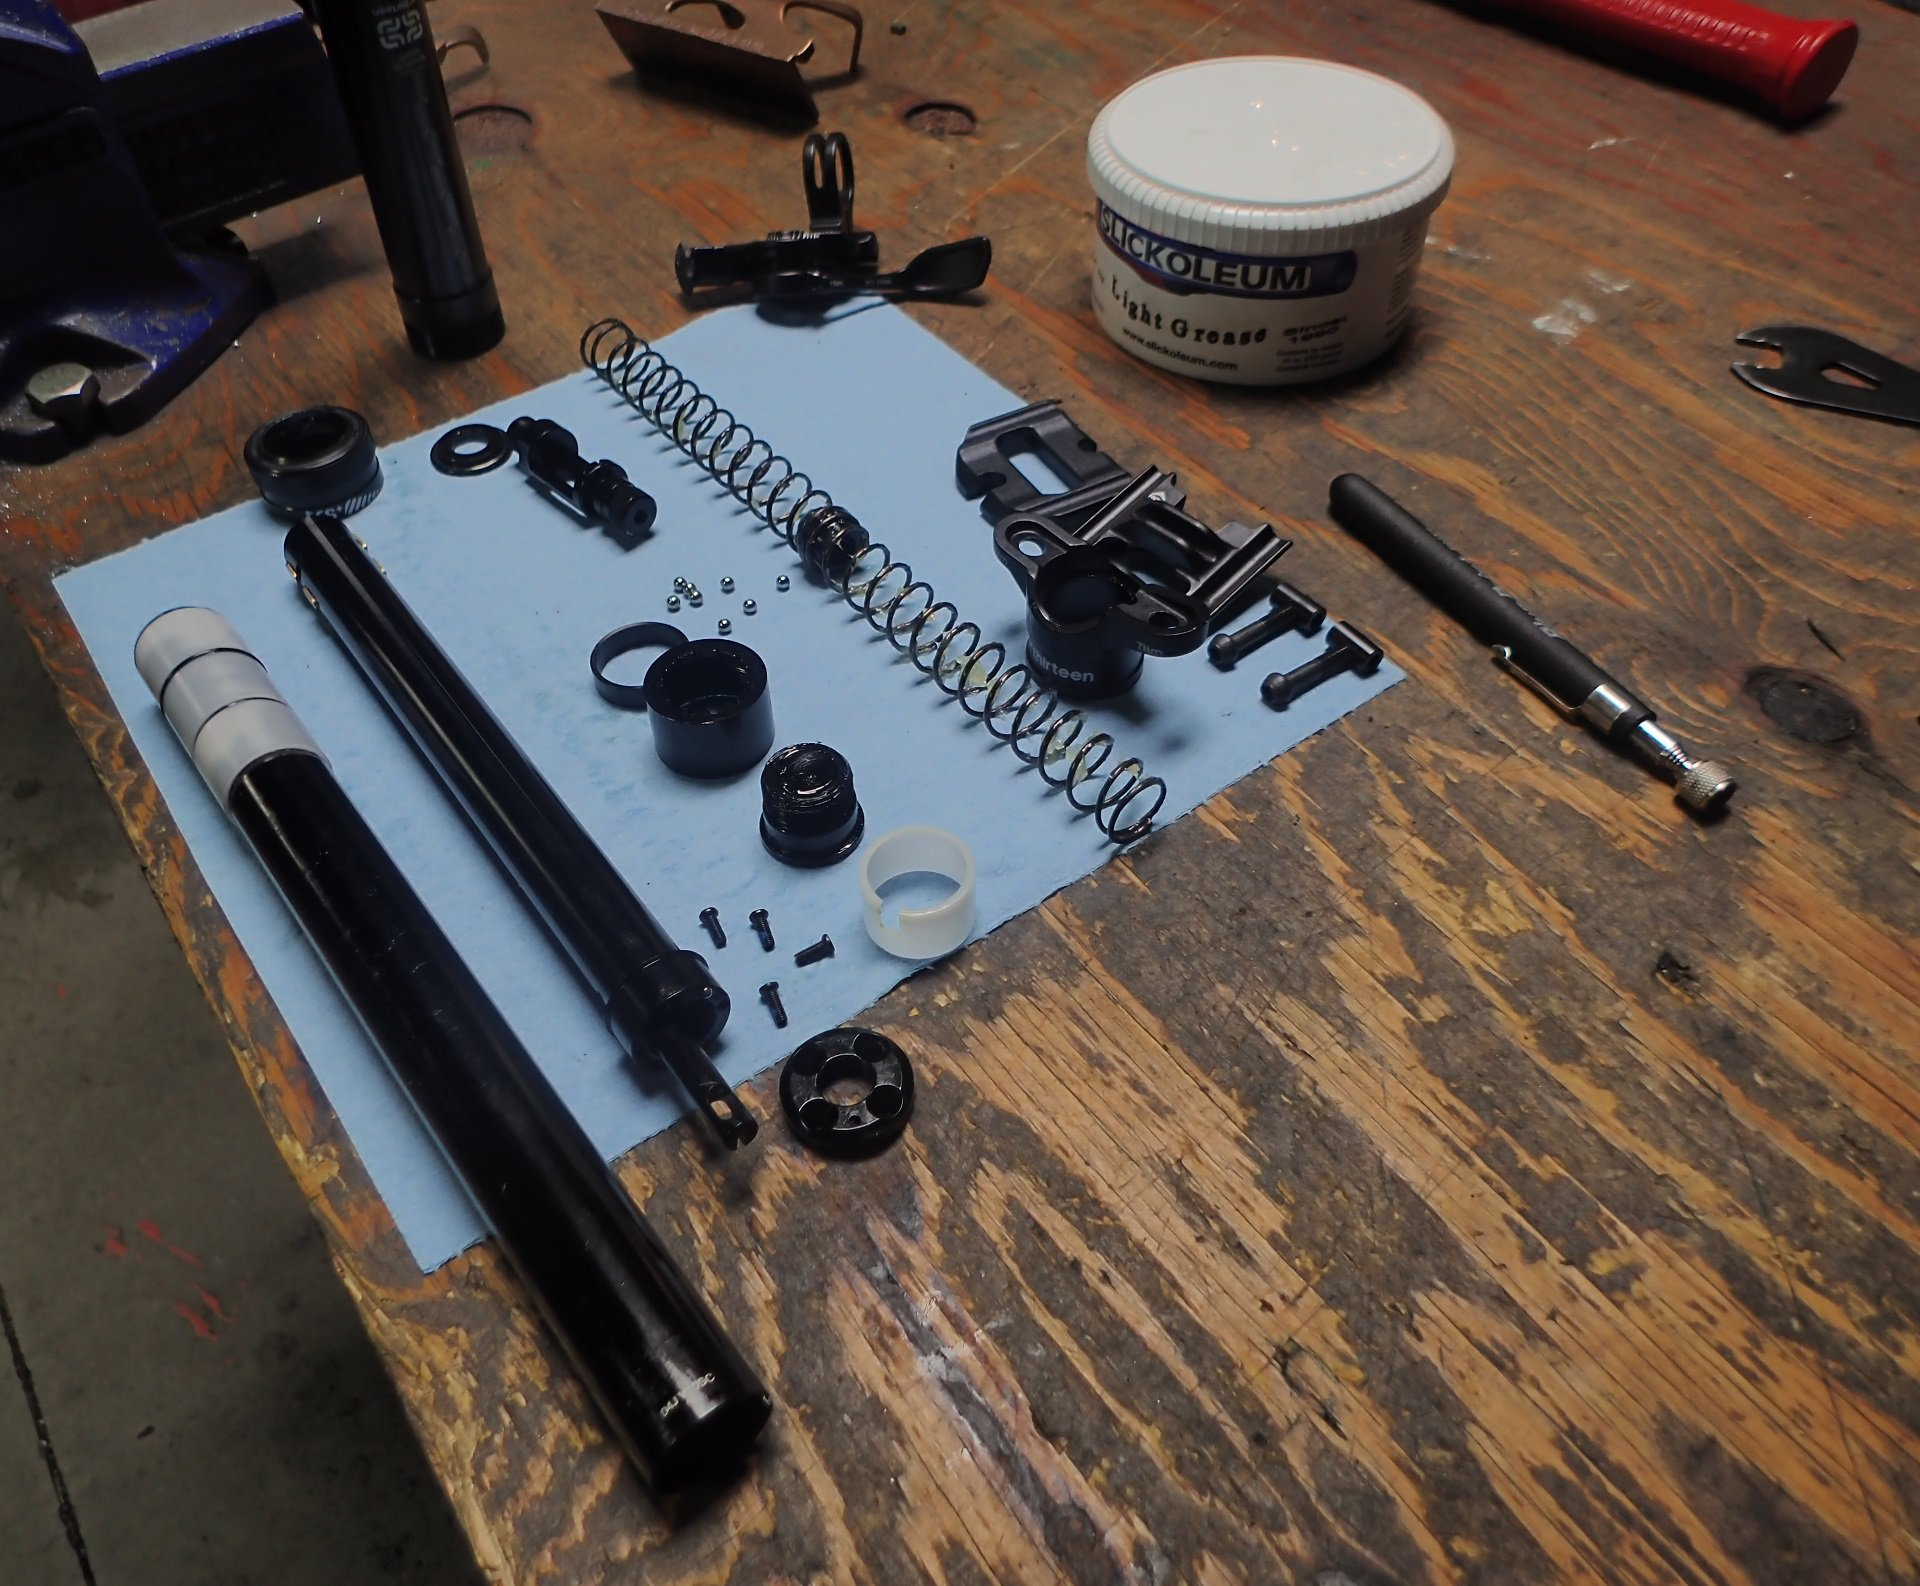 E13 Dropper Post Teardown on the Bench